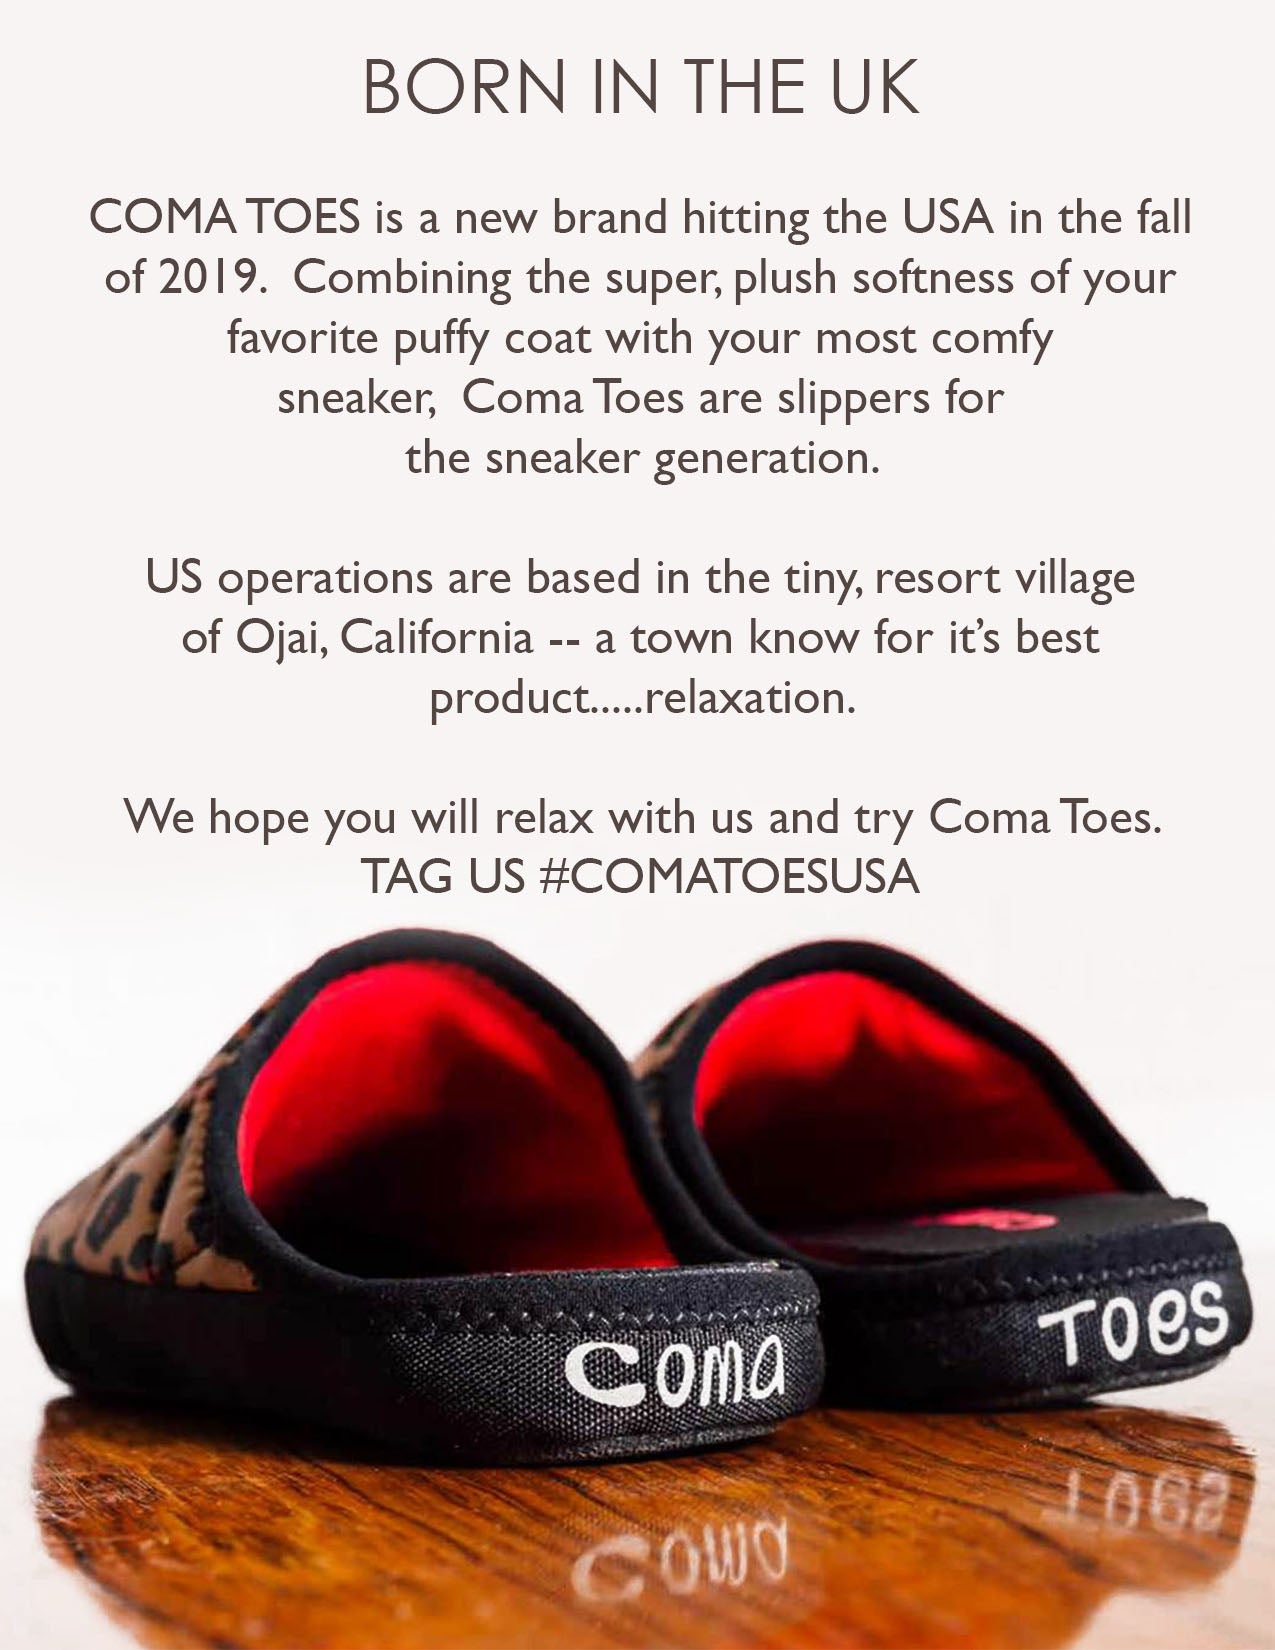 Coma Toes slippers for the sneaker generation about us